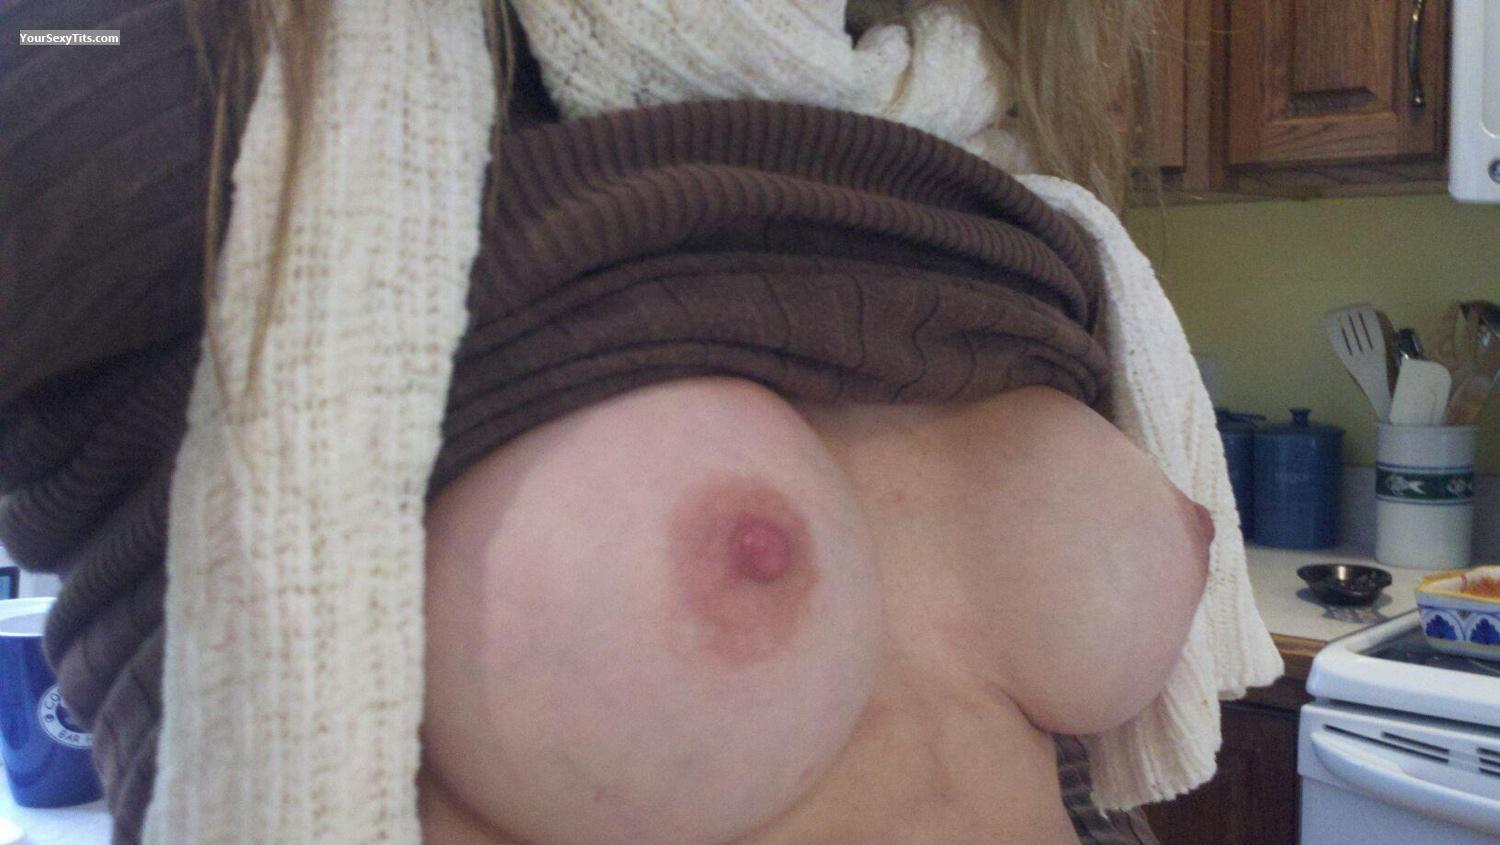 My Medium Tits Selfie by Wifey